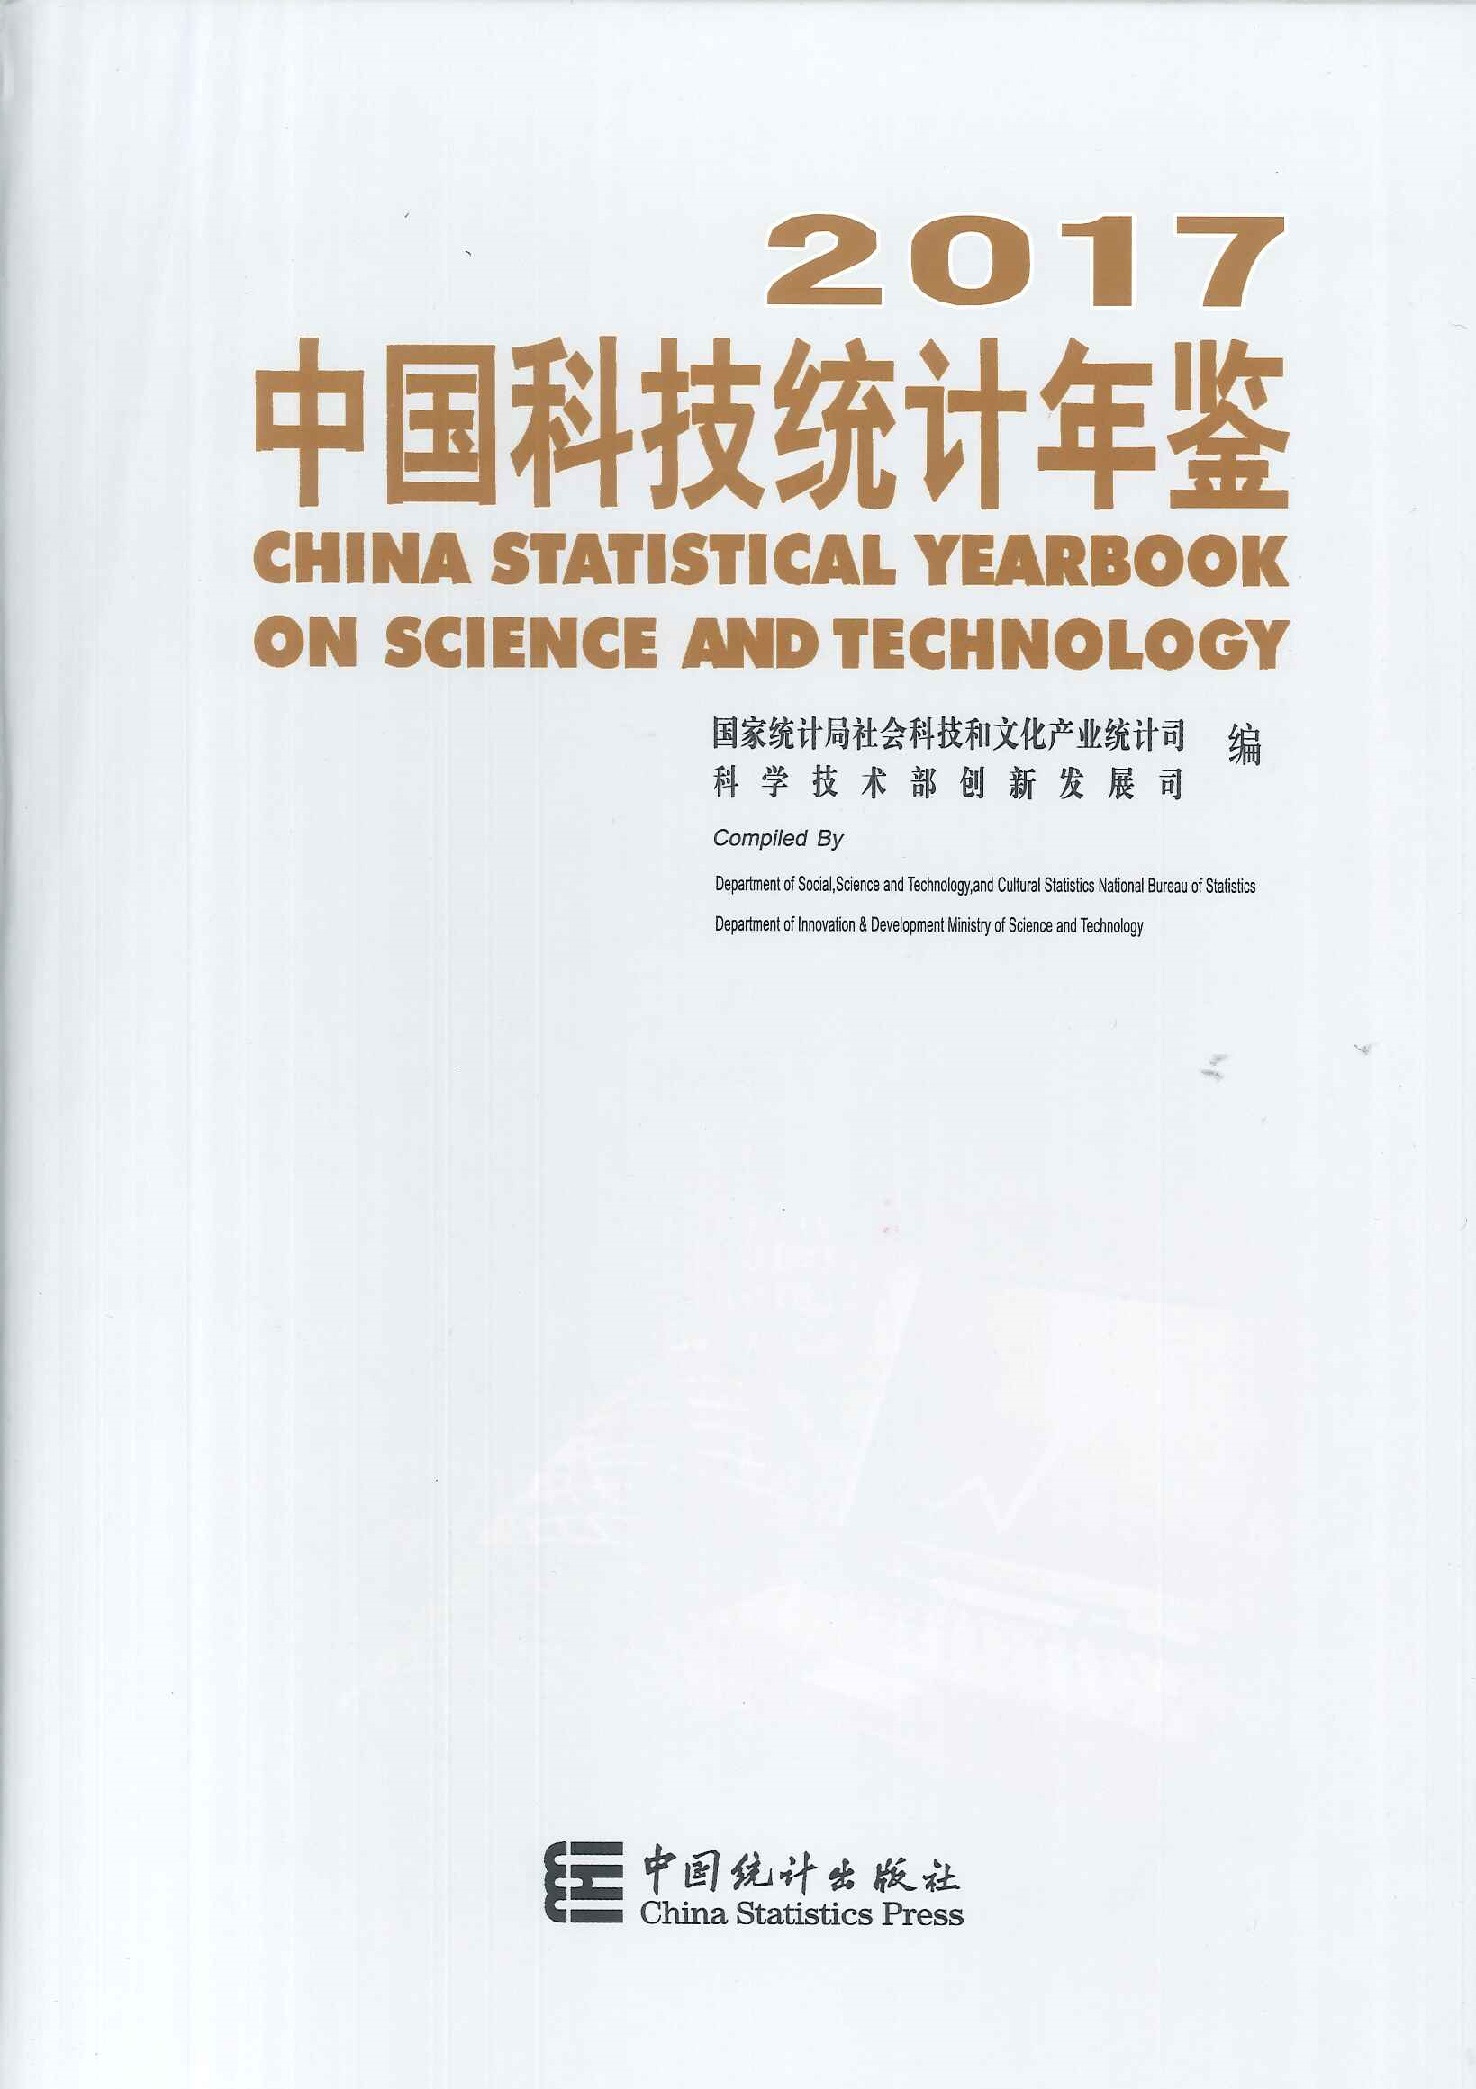 中国科技统计年鉴=China statistical yearbook on science and technology